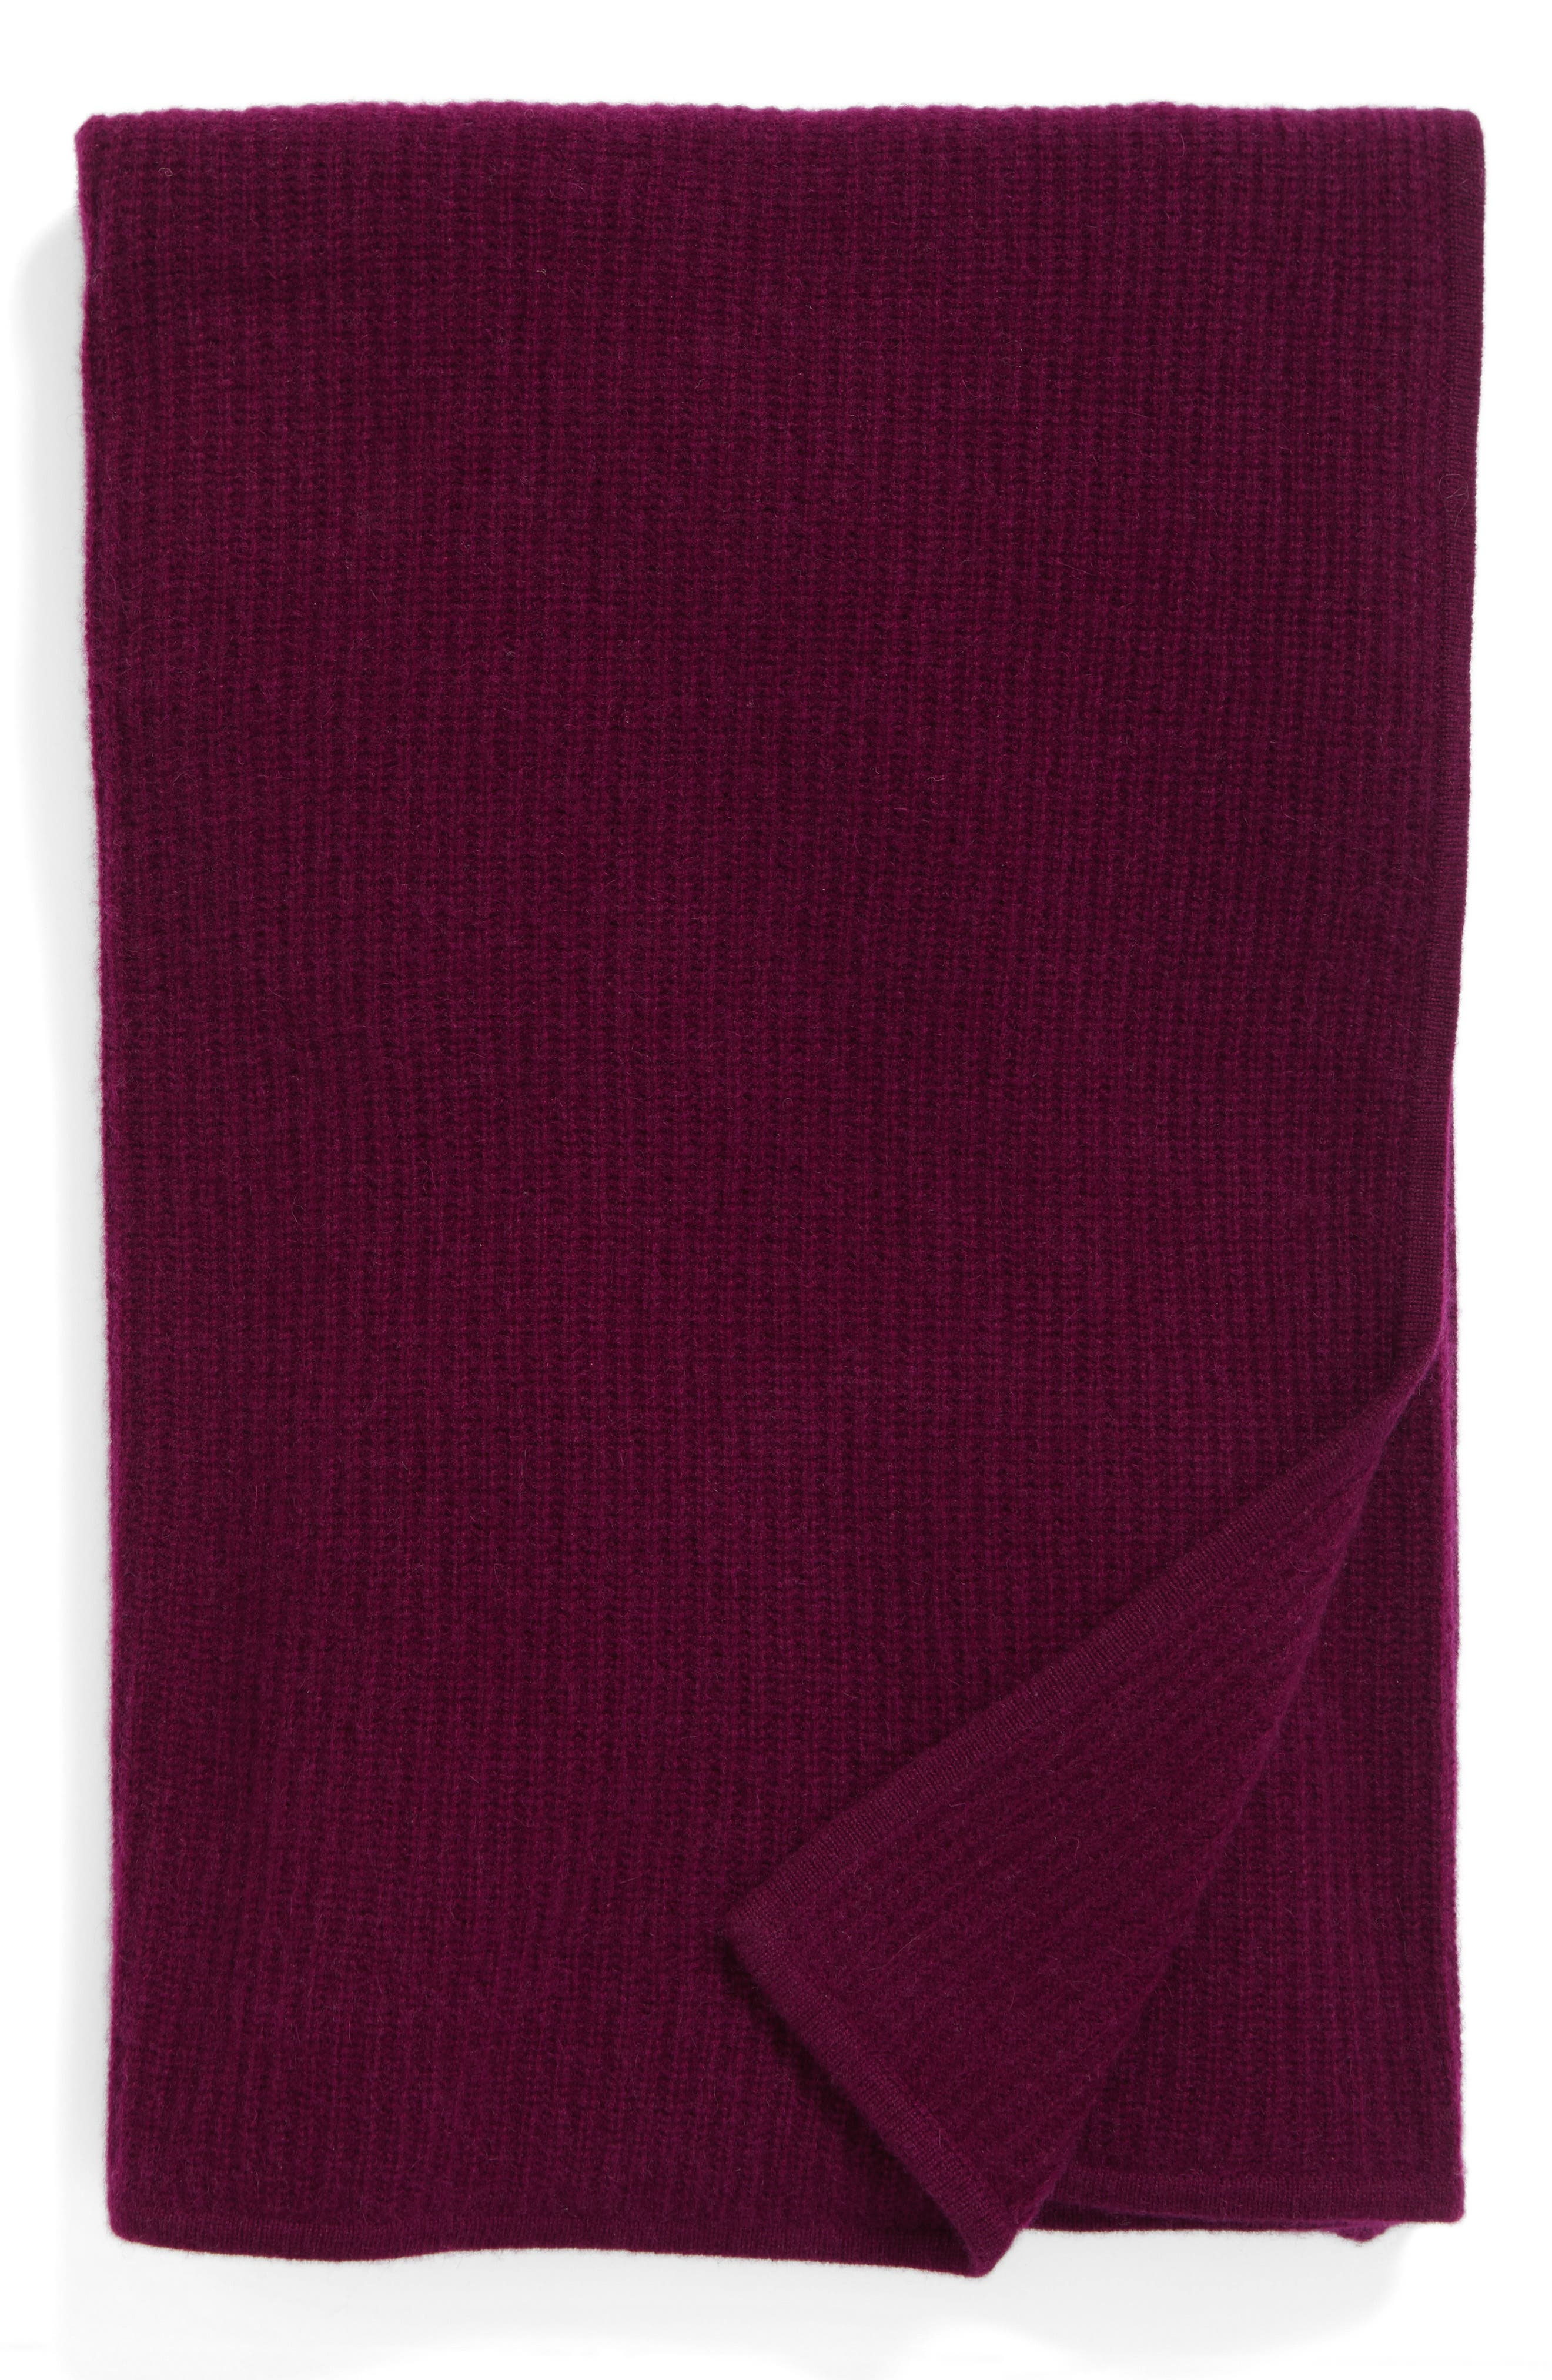 Alternate Image 1 Selected - Nordstrom at Home Lattice Cashmere Throw Blanket